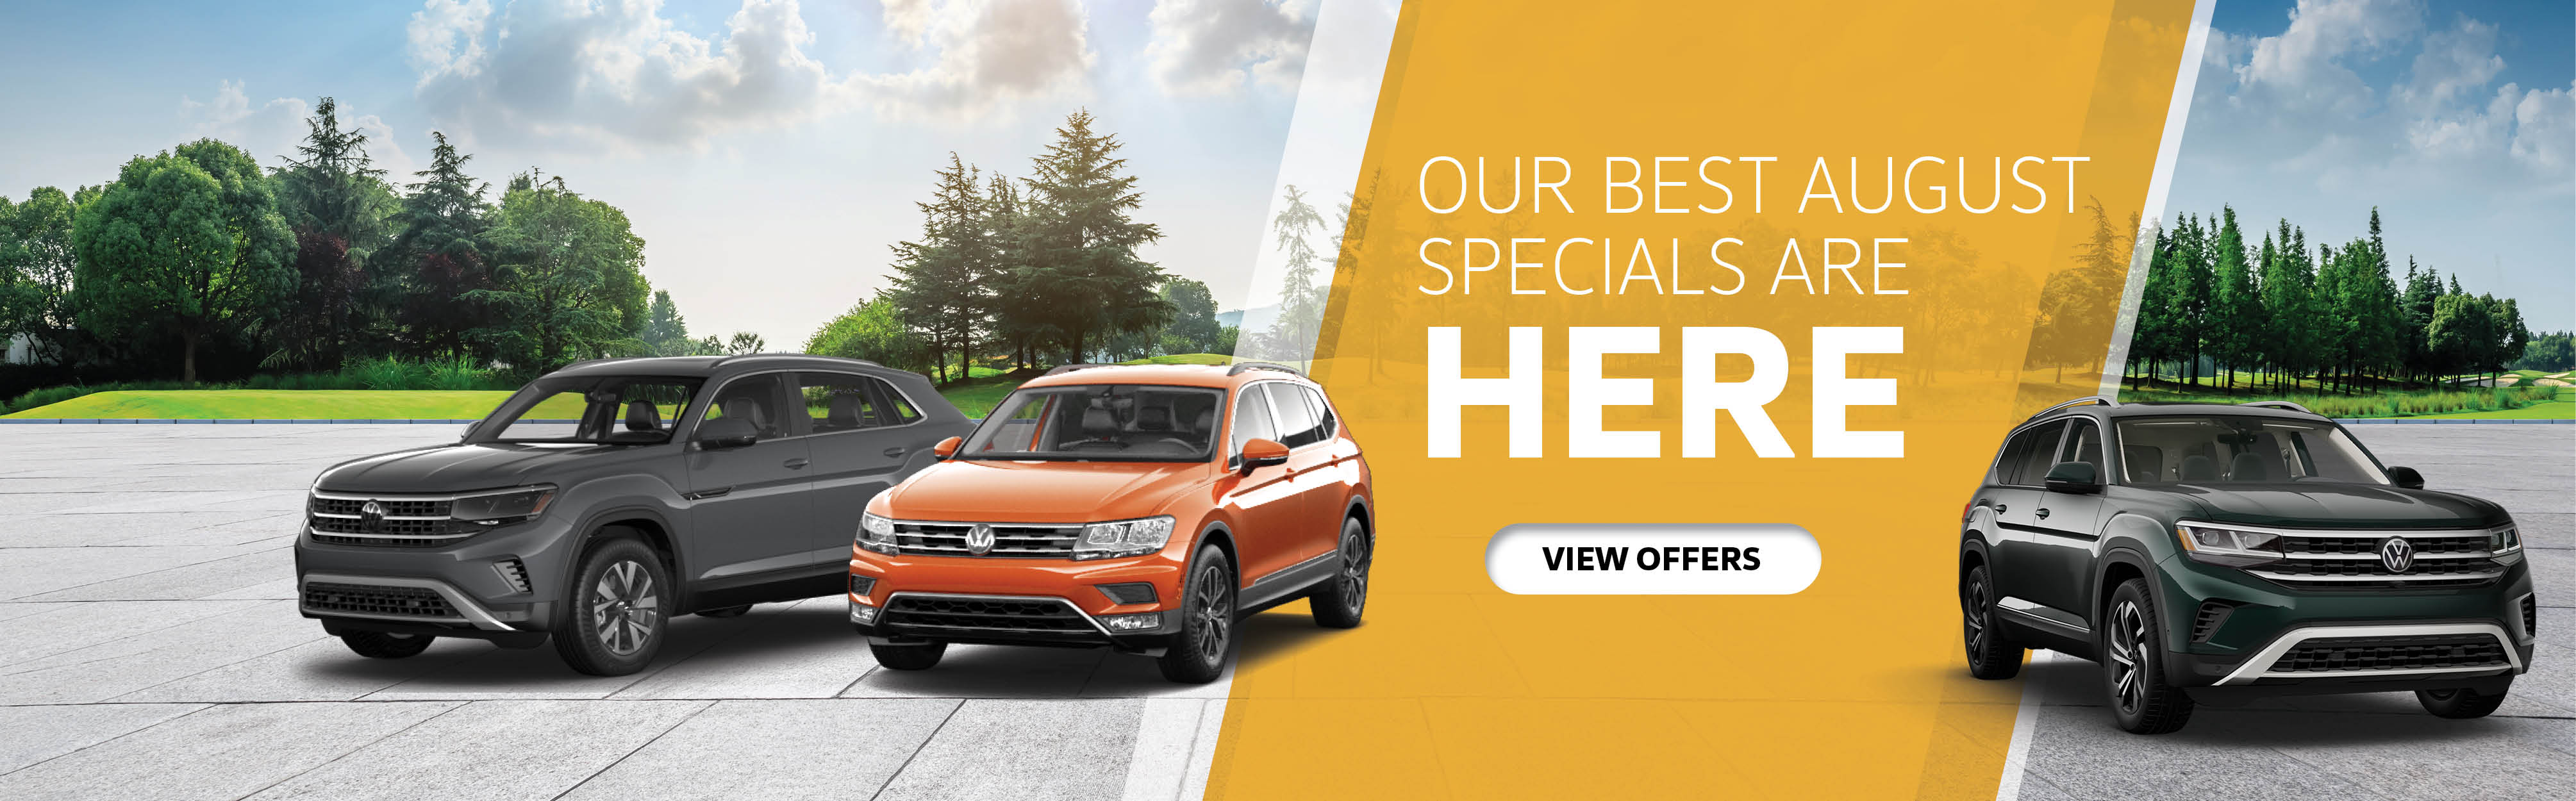 Our Best August Specials At Maple Volkswagen